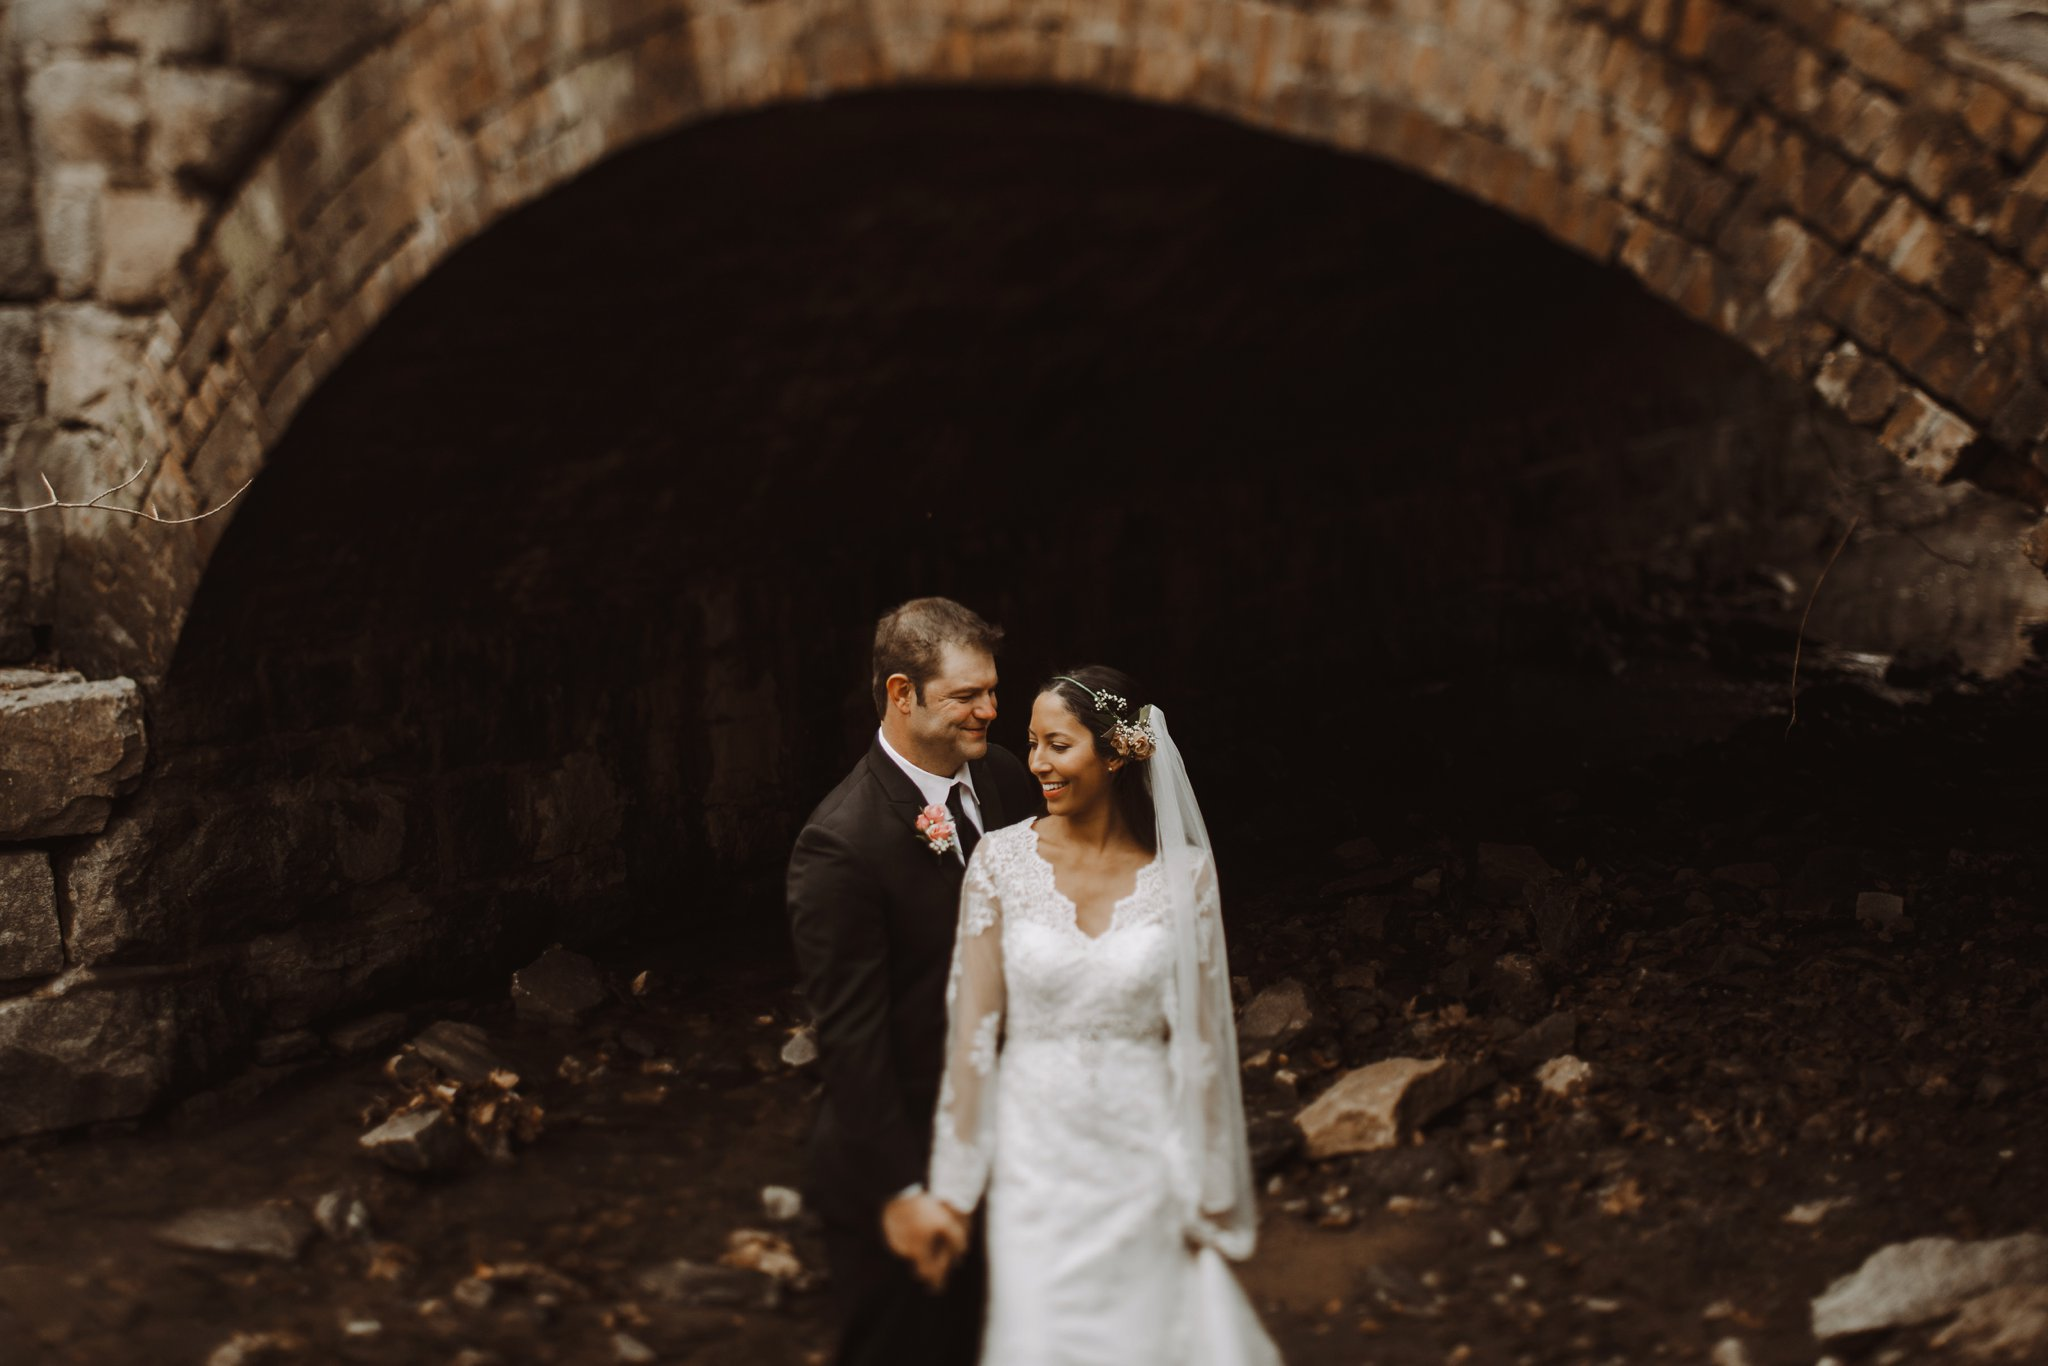 Intimate Ellicott City elopement Howard County wedding photographer